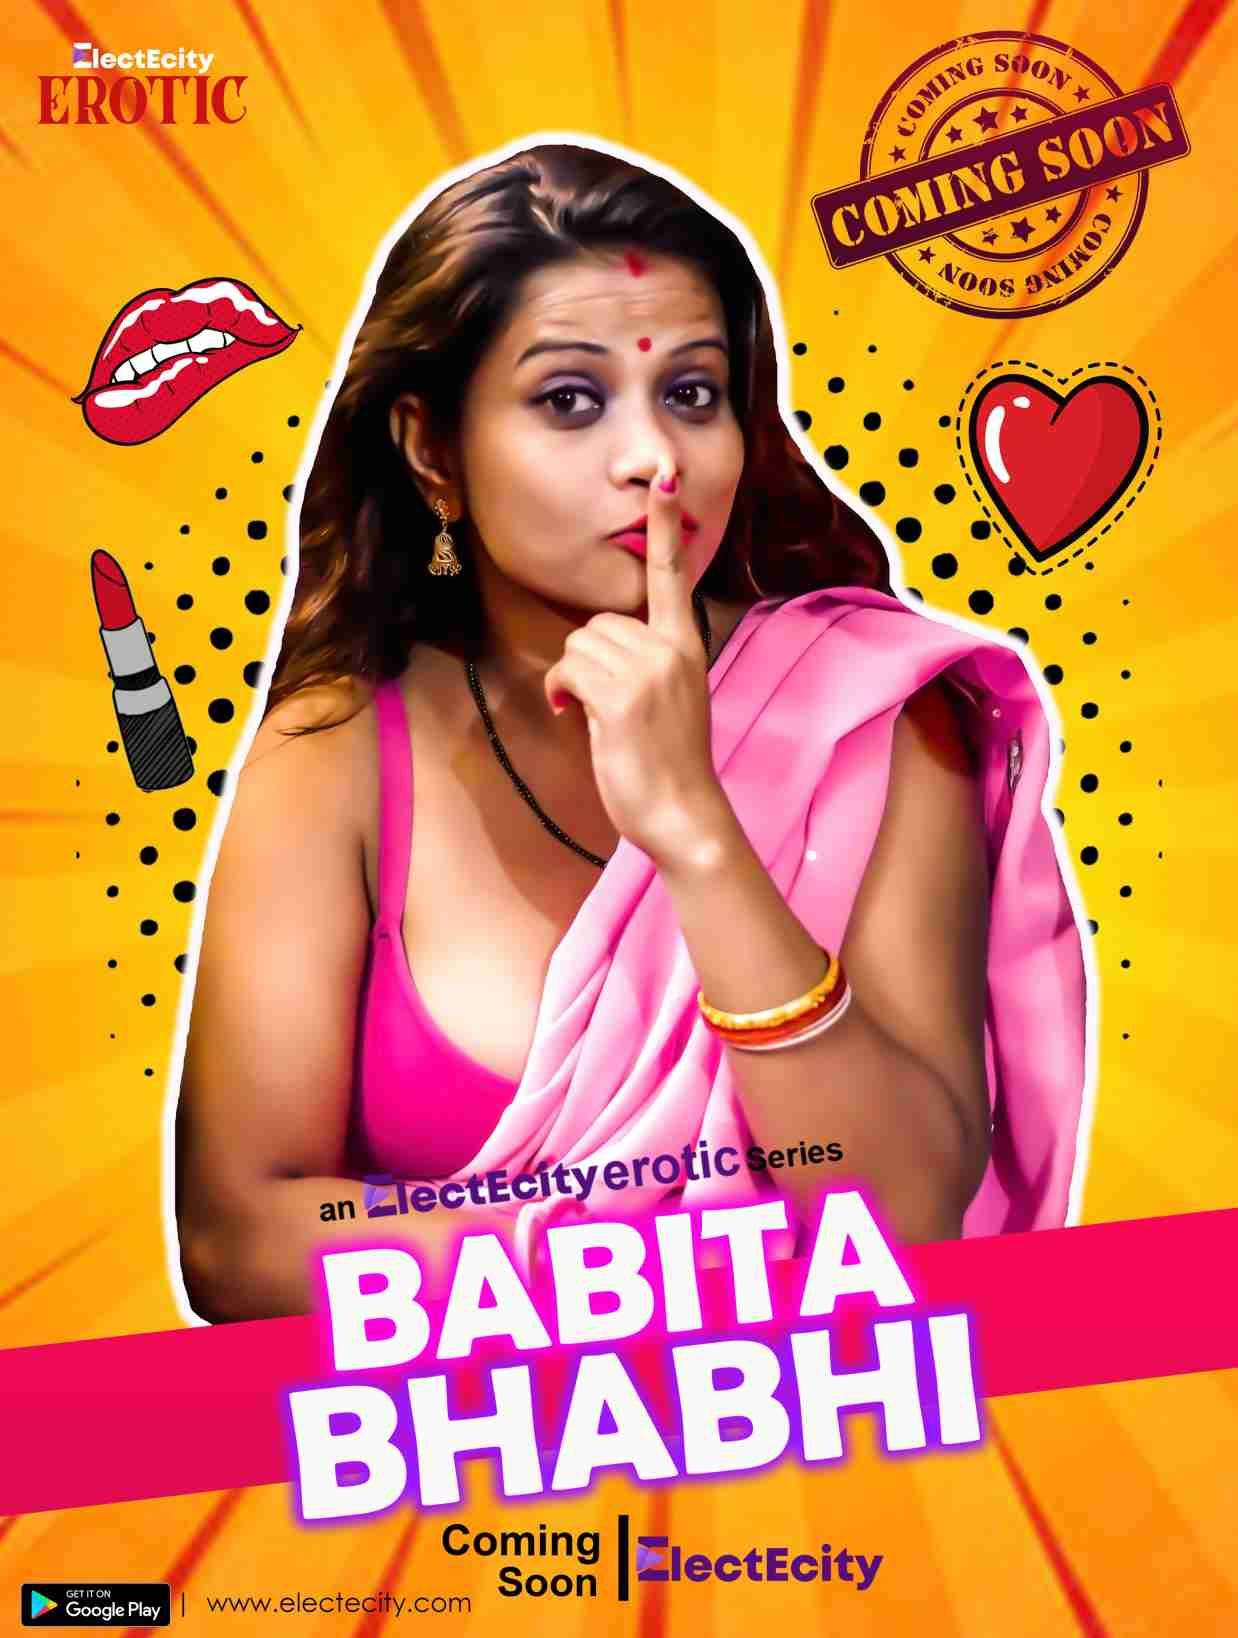 Babita Bhabhi 2020 S01E02 Hindi ElectEcity Web Series 720p HDRip 170MB Download